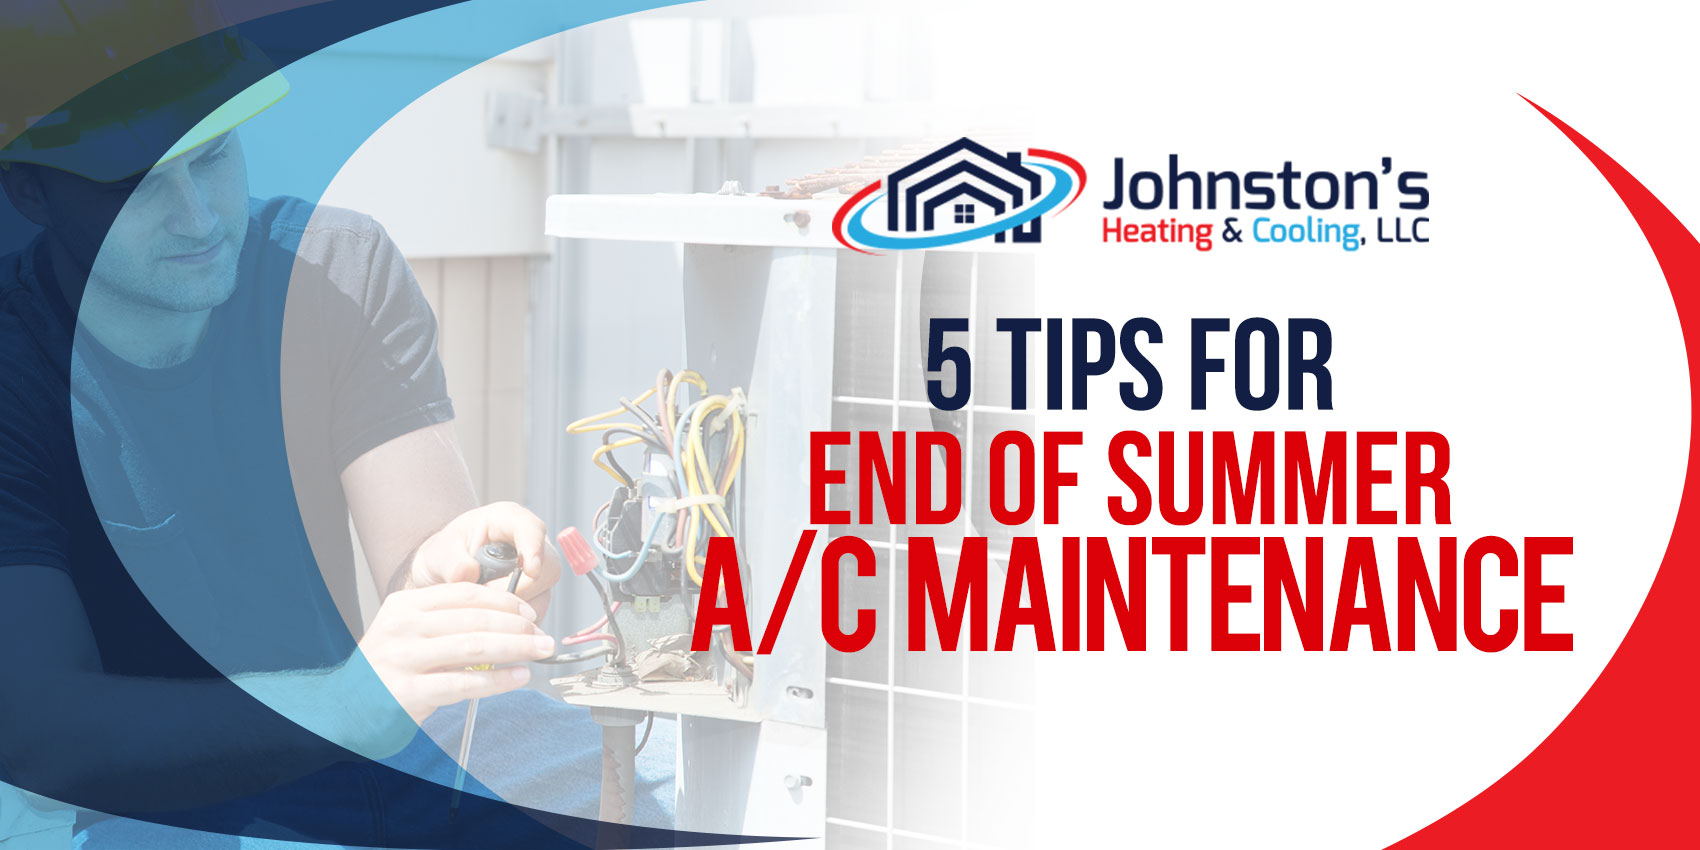 5 Tips for End of Summer A/C Maintenance